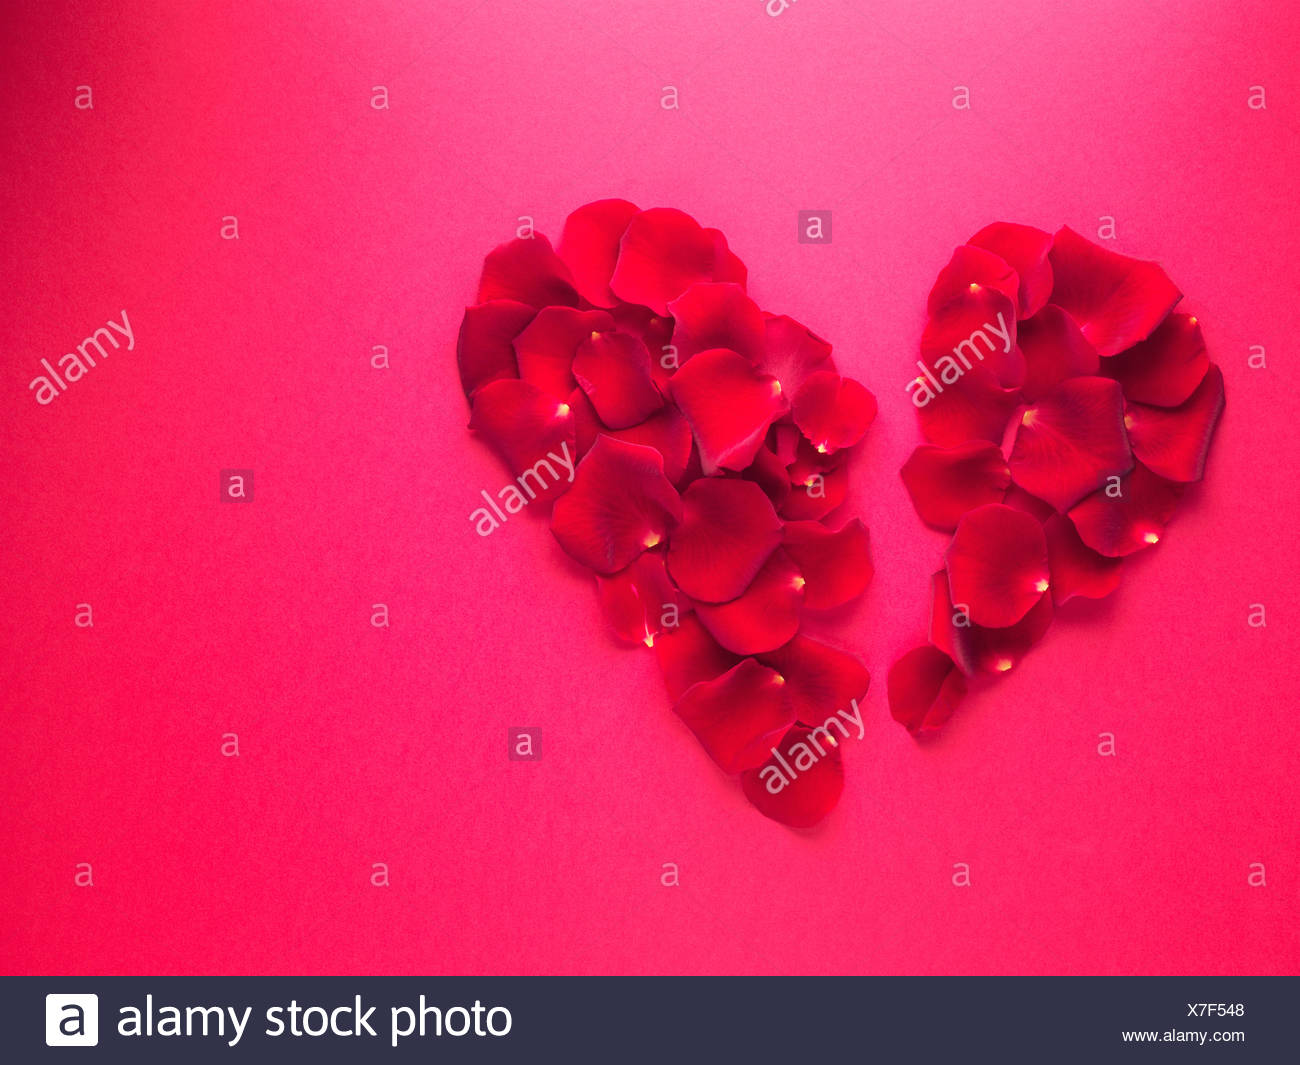 Red rose petals forming broken heart-shape - Stock Image